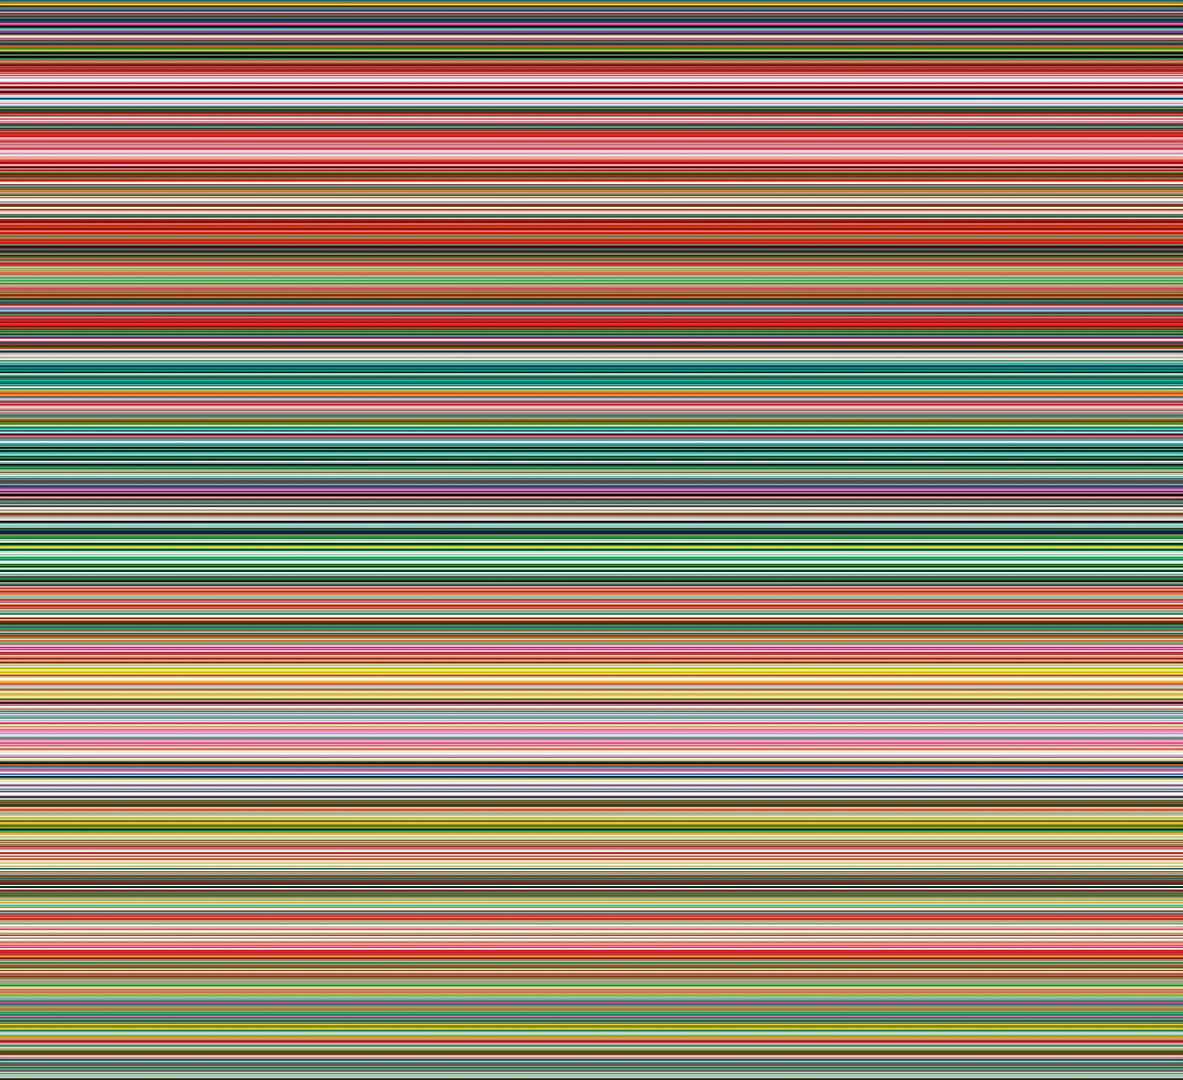 Gerhard Richter,  Strip , 2012. Digital print between Alu Diabond and Perspex, 210x230cms.